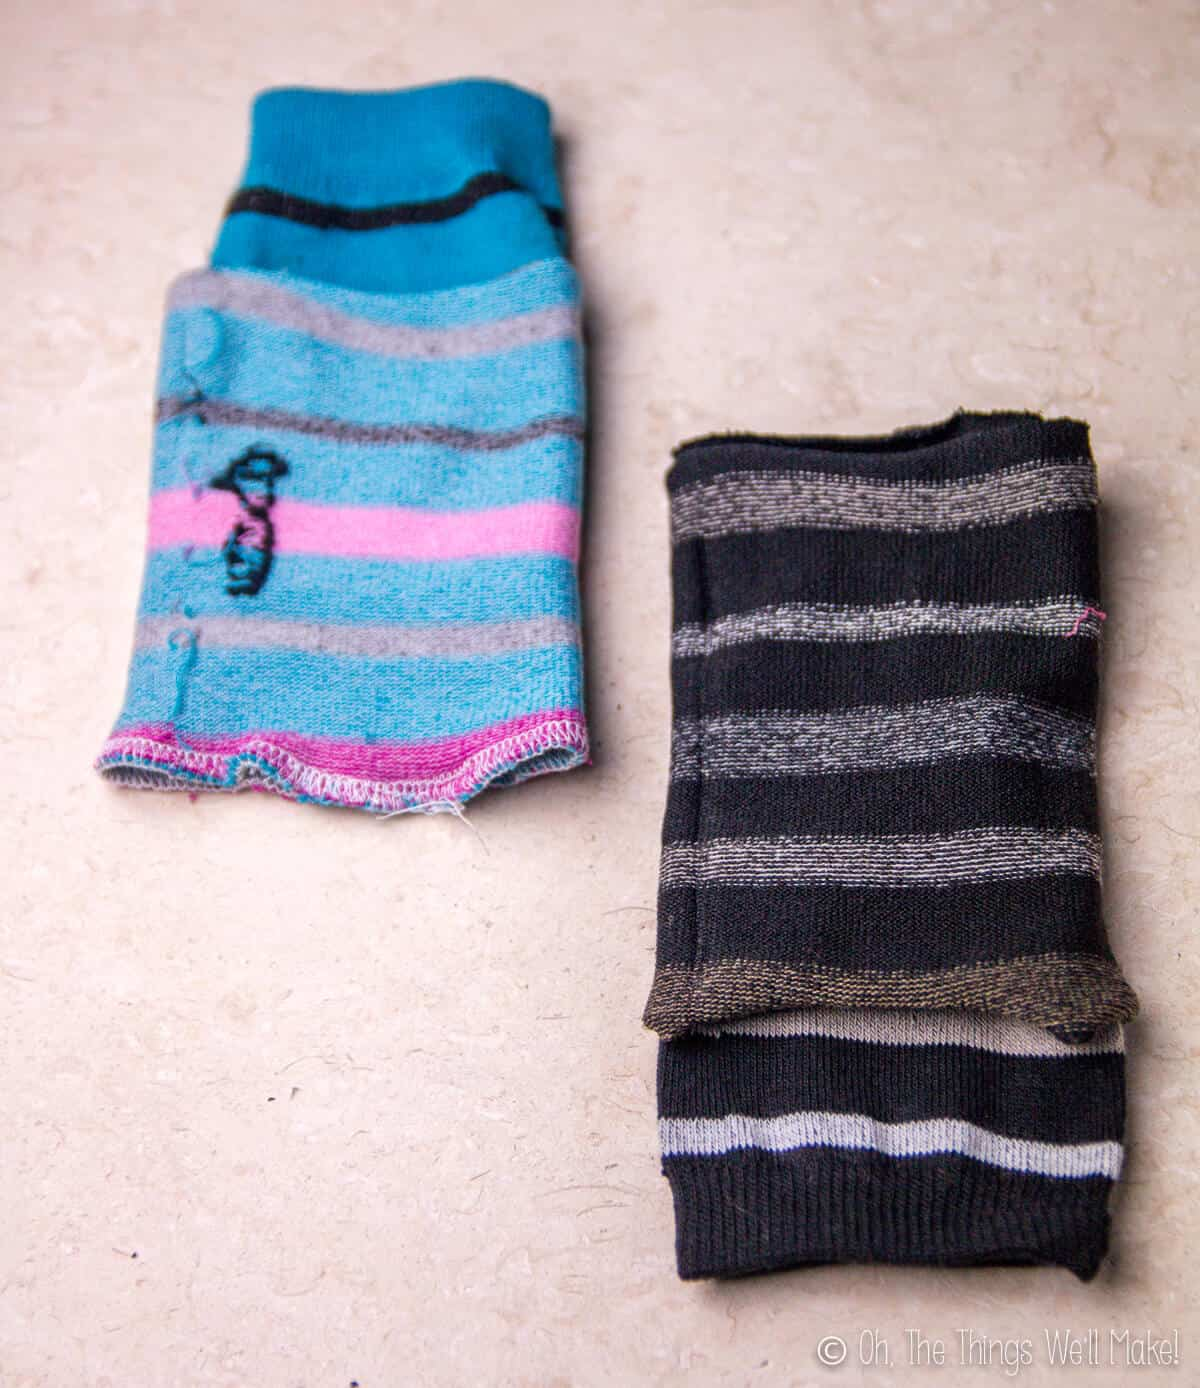 Two sock pieces, one striped blue and one black striped, put together with right sides facing in, ready to be sewn.